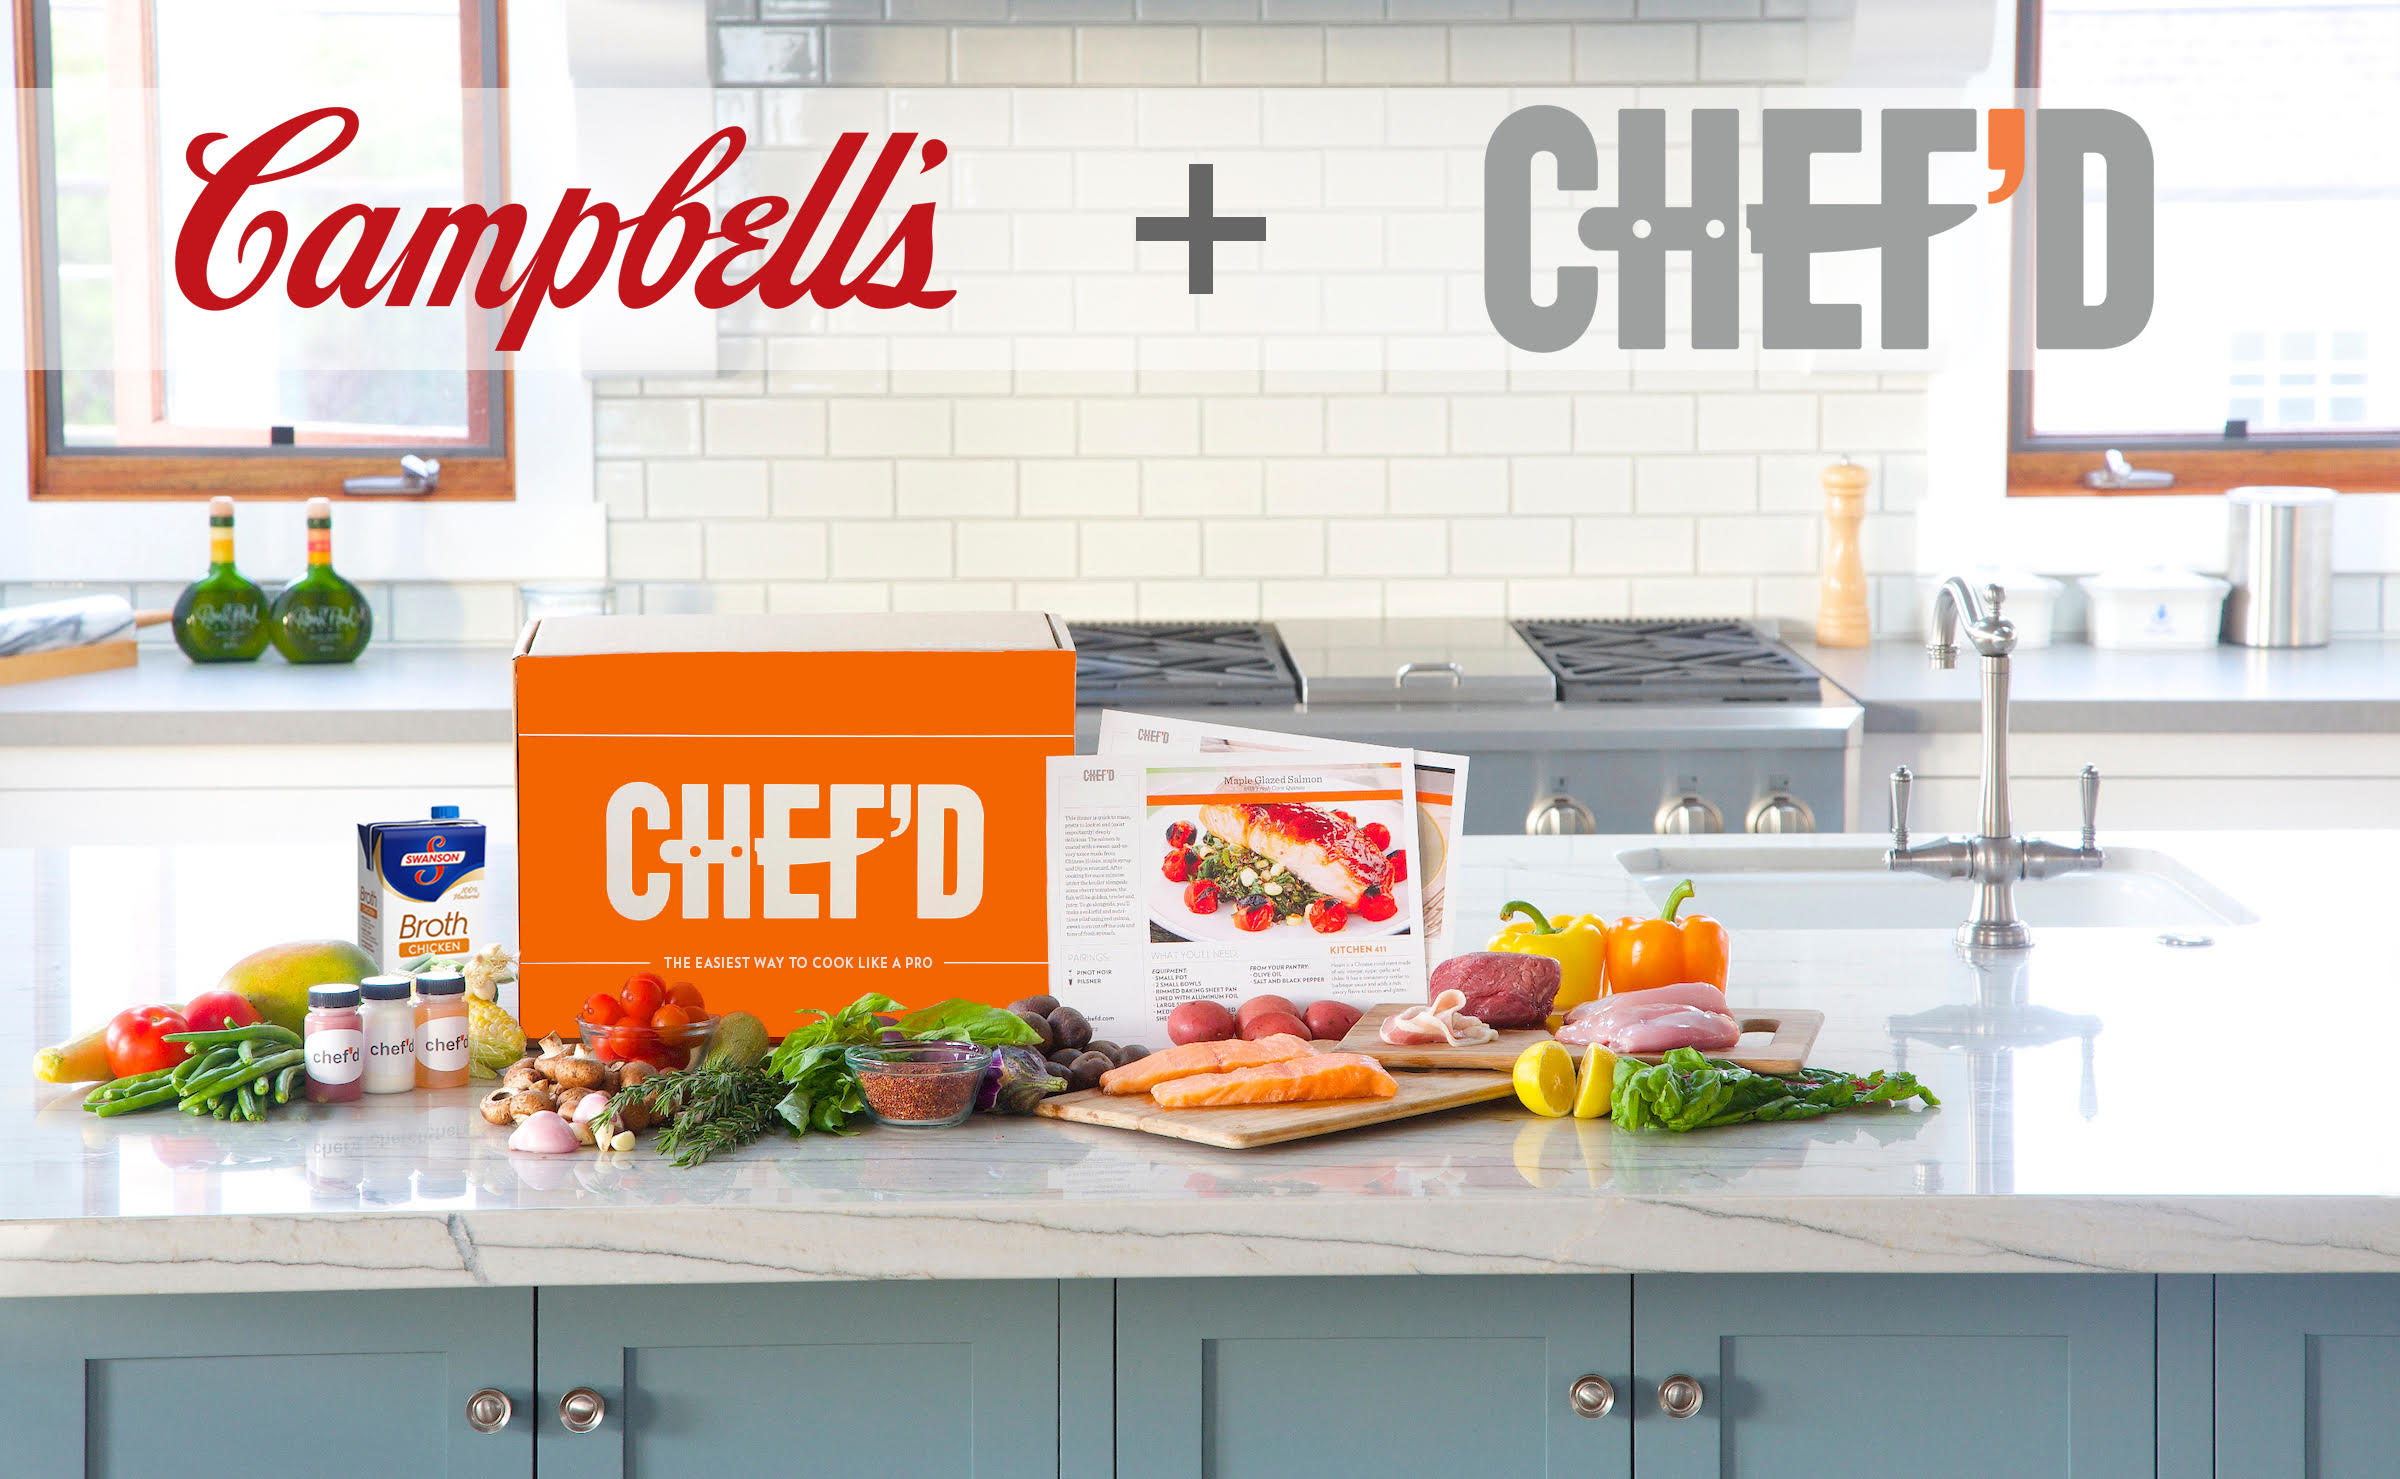 Campbell Soup has invested $10 million in Chef'd, an e-commerce meal kit startup that launched in 2015.